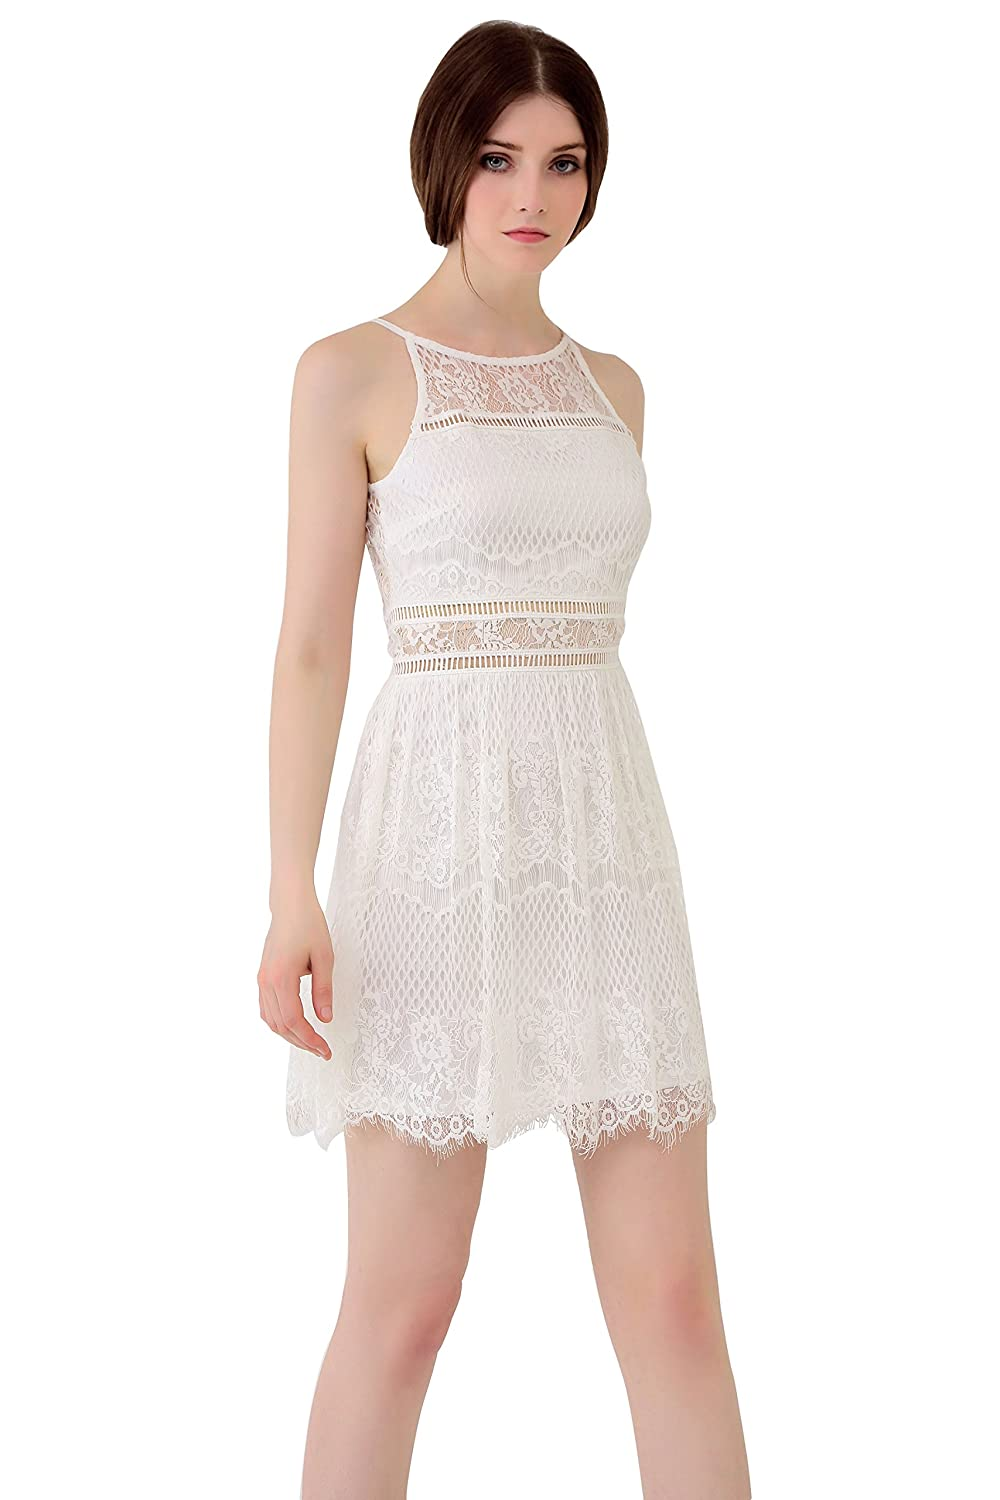 cf8459ddc36 Top 10 wholesale Halter Fit And Flare Dress - Chinabrands.com